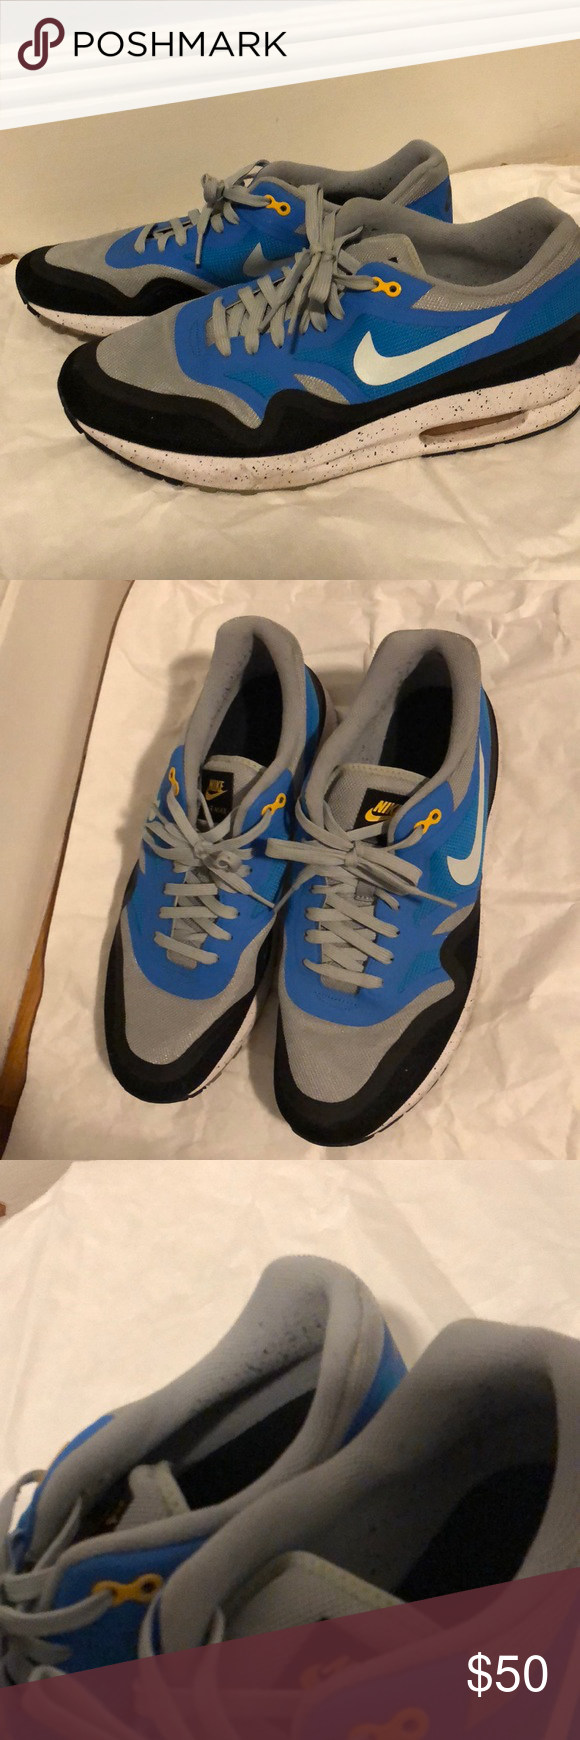 hot sale online bf232 f3149 Nike Air Max Lunar1 Running SilverWing 654469-001 Nike Air Max Lunar1  Running Shoes Silver Wing Blue Black SZ 11.5 ( 654469-001 ) Pre owned In  good ...